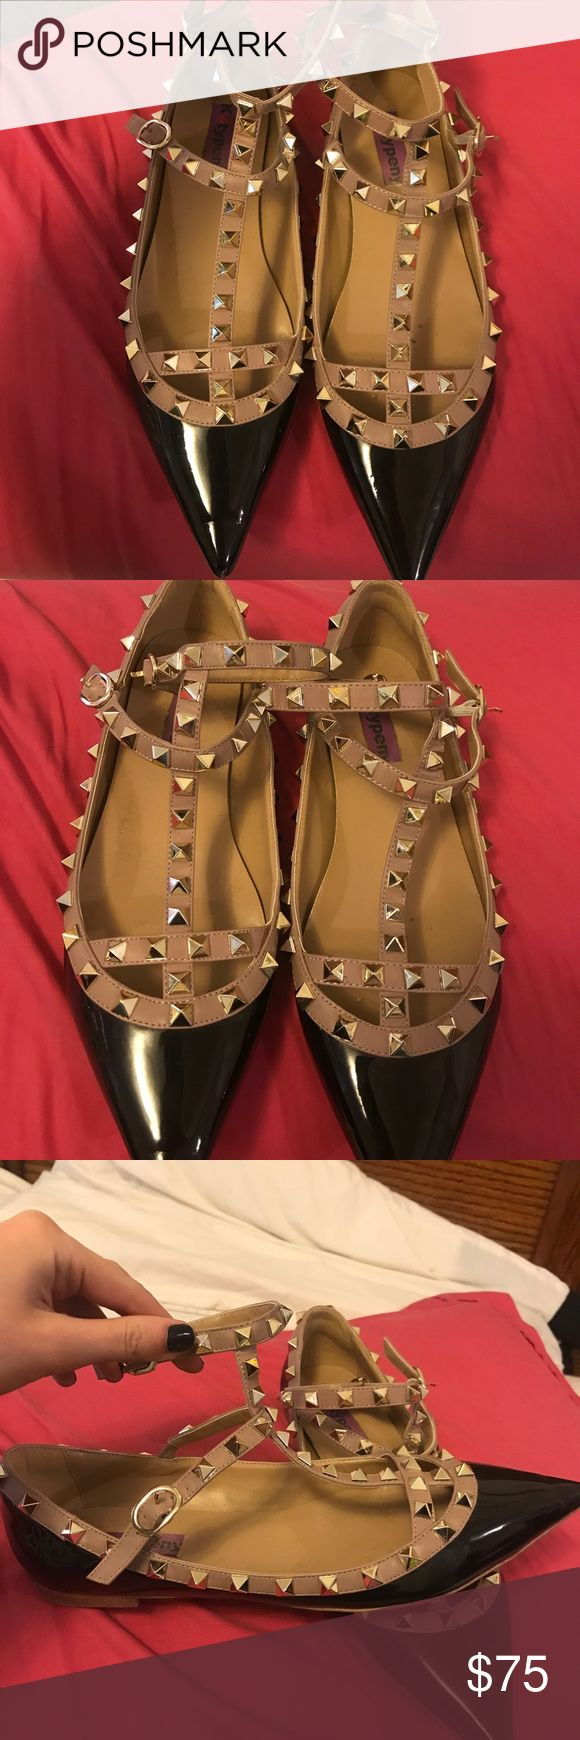 Valentino Rockstud Flats Just like them! Please be aware that these are amazing look alikes! Ignore the price. Posh will remove them. But they're too good not to post. Purchased for over $100 originally. Swoop them up fast! Valentino Shoes Flats & Loafers